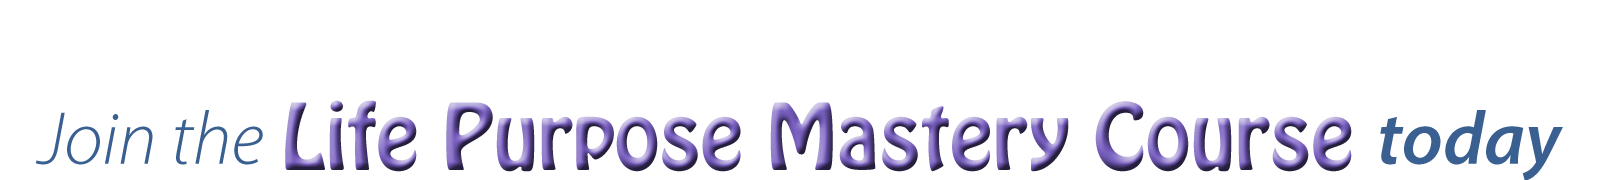 Join the Life Purpose Mastery Course today